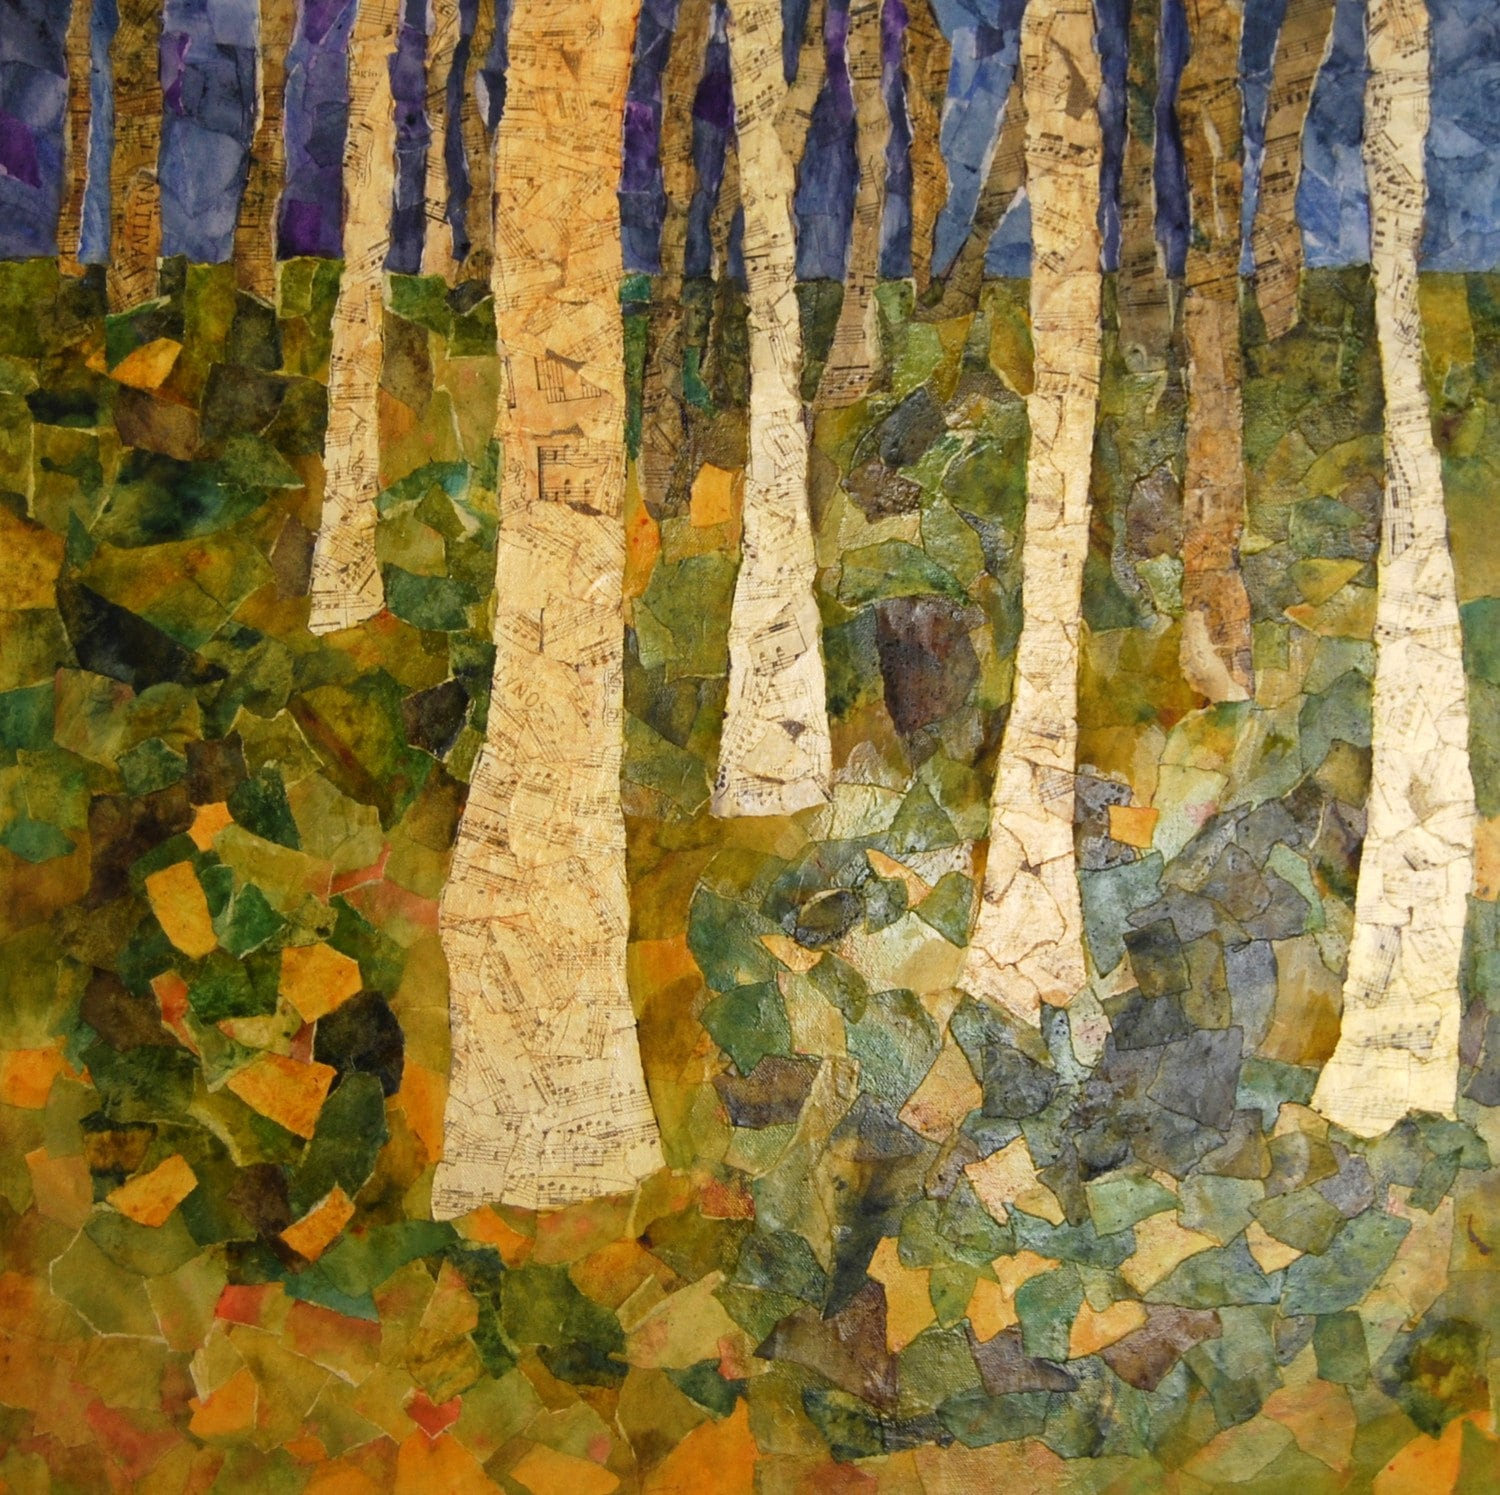 Birch Tree Wall Art Mixed Media Collage Canvas Painting